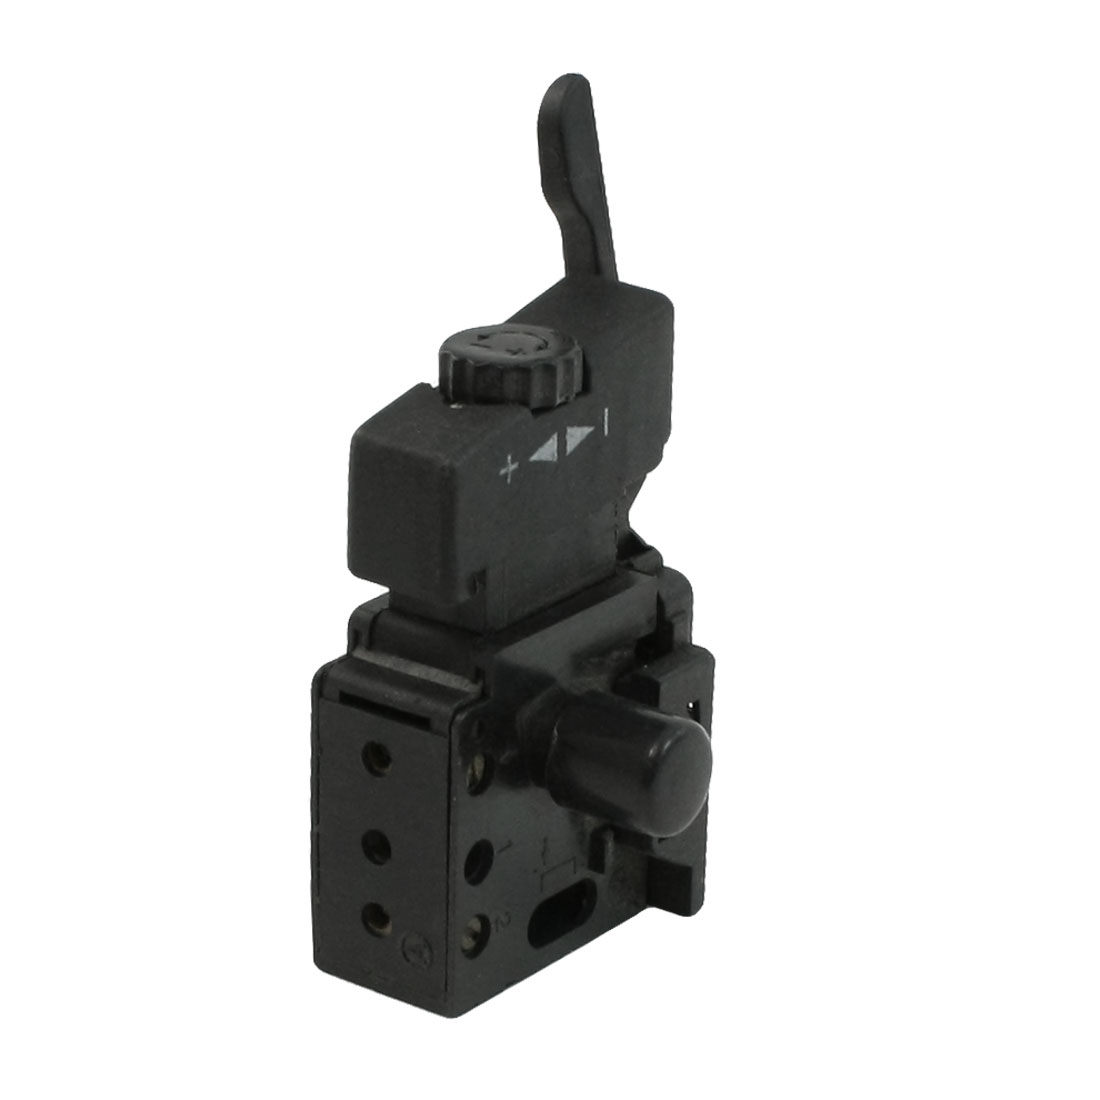 Electric Power Tool Part Speed Control Latching Action Trigger Switch